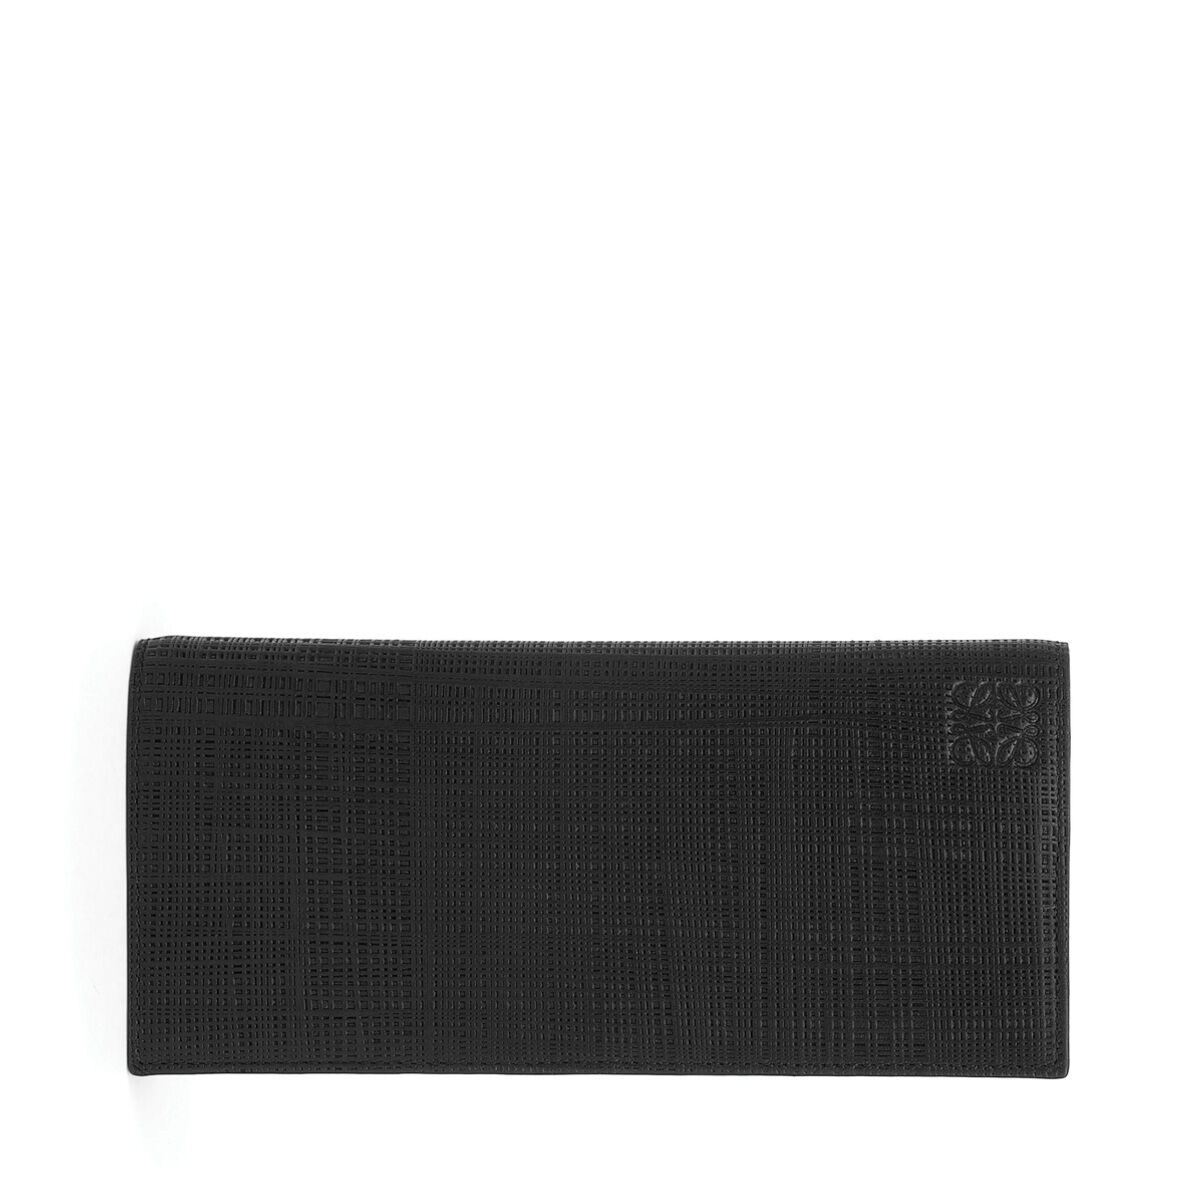 LOEWE Billetero Largo Horizontal Negro all